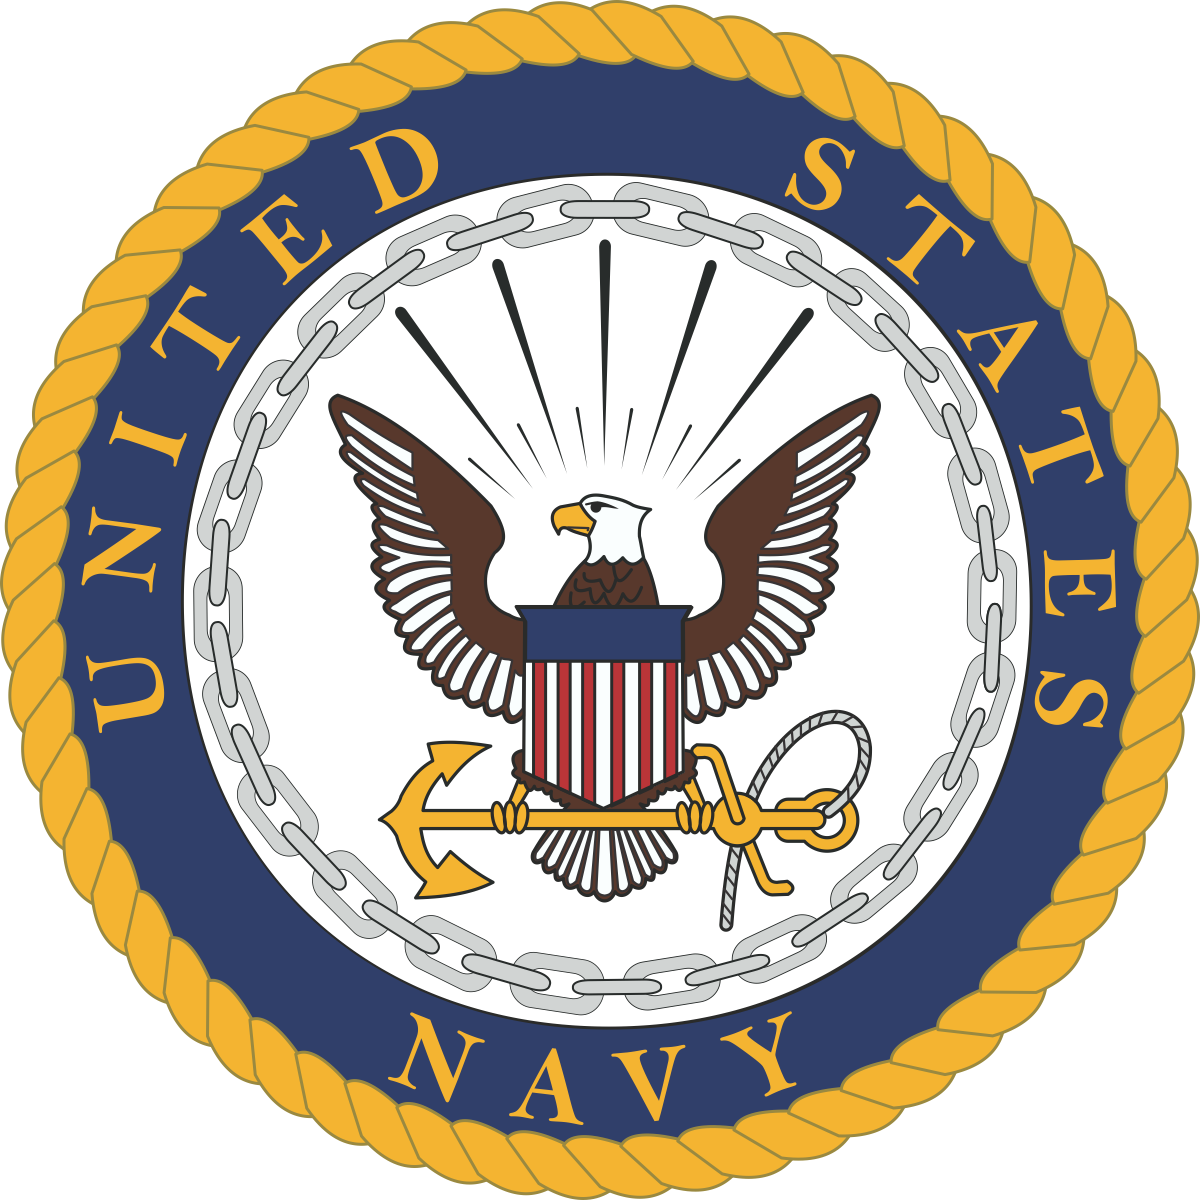 States navy us navy seal decal united states navy us navy seal decal biocorpaavc